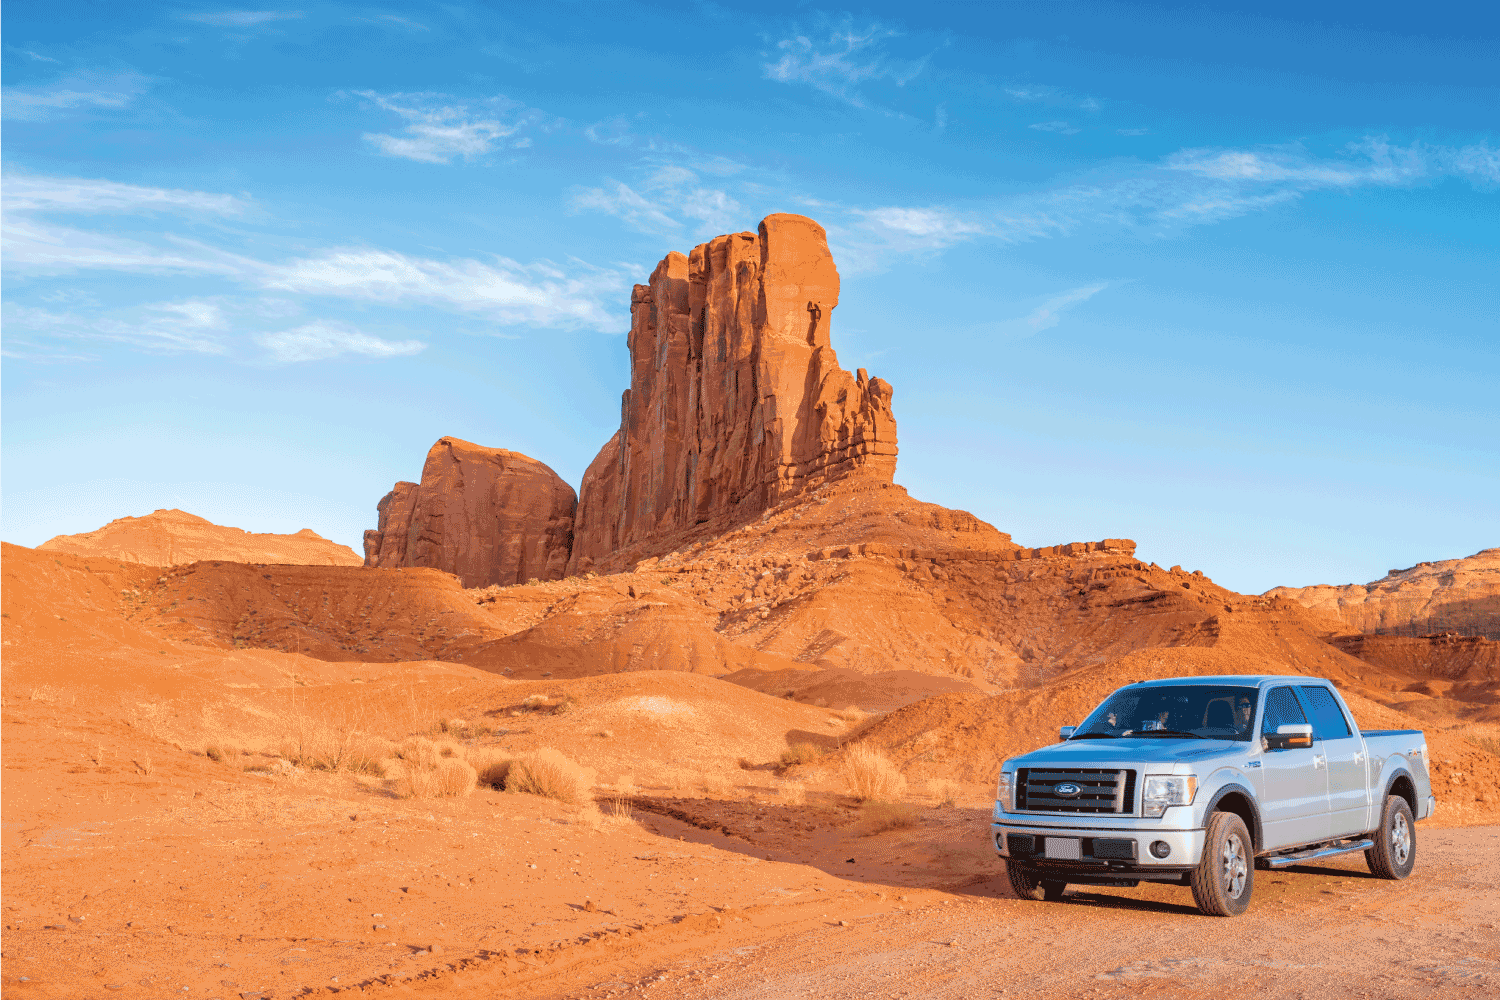 Pickup truck drives past scenic cliffs at the Monument Valley loop drive, Utah on a sunny day.